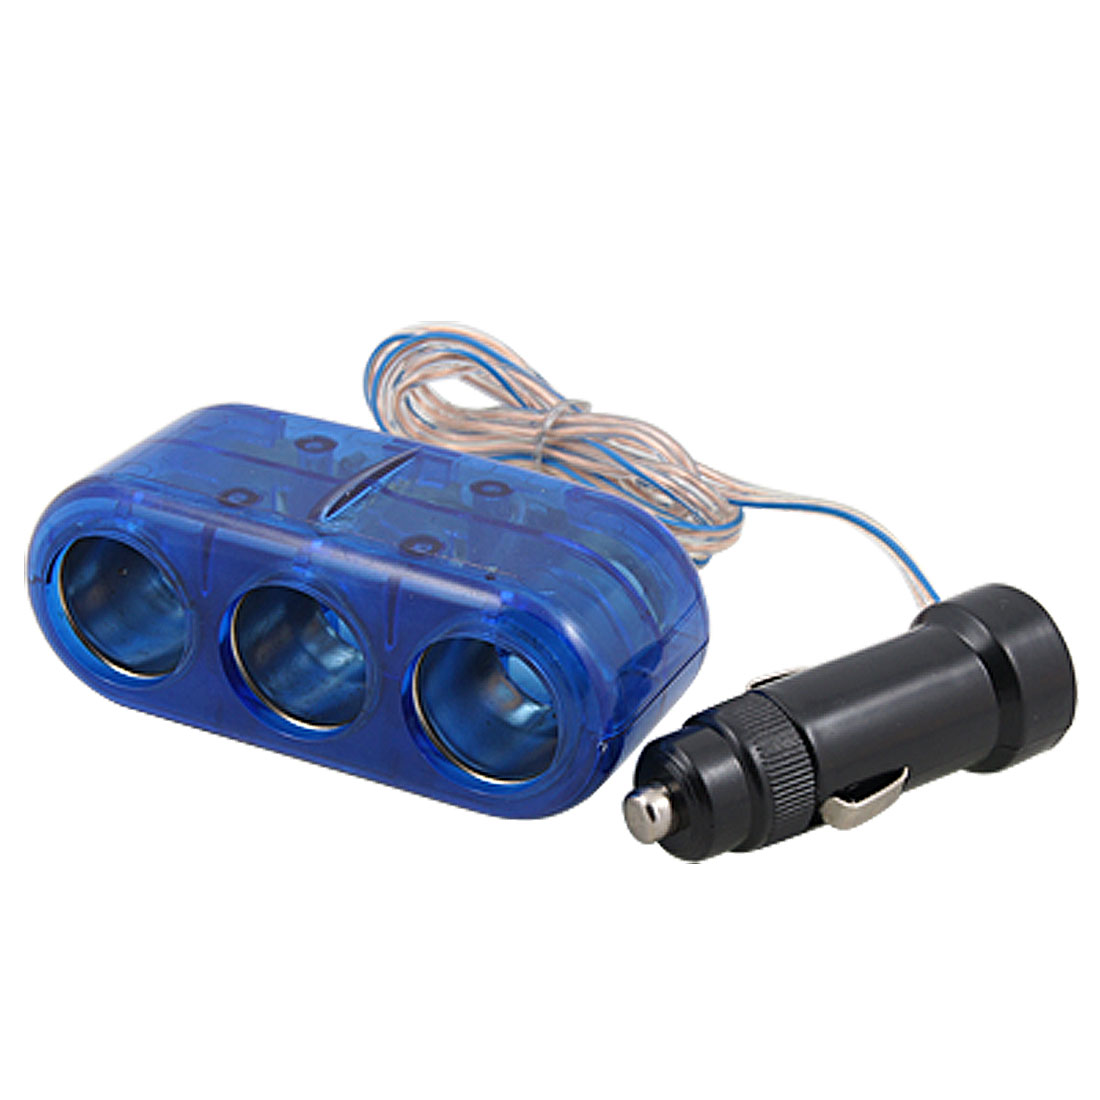 Blue 1 to 3 Car Cigarette Lighter Splitter Adapter